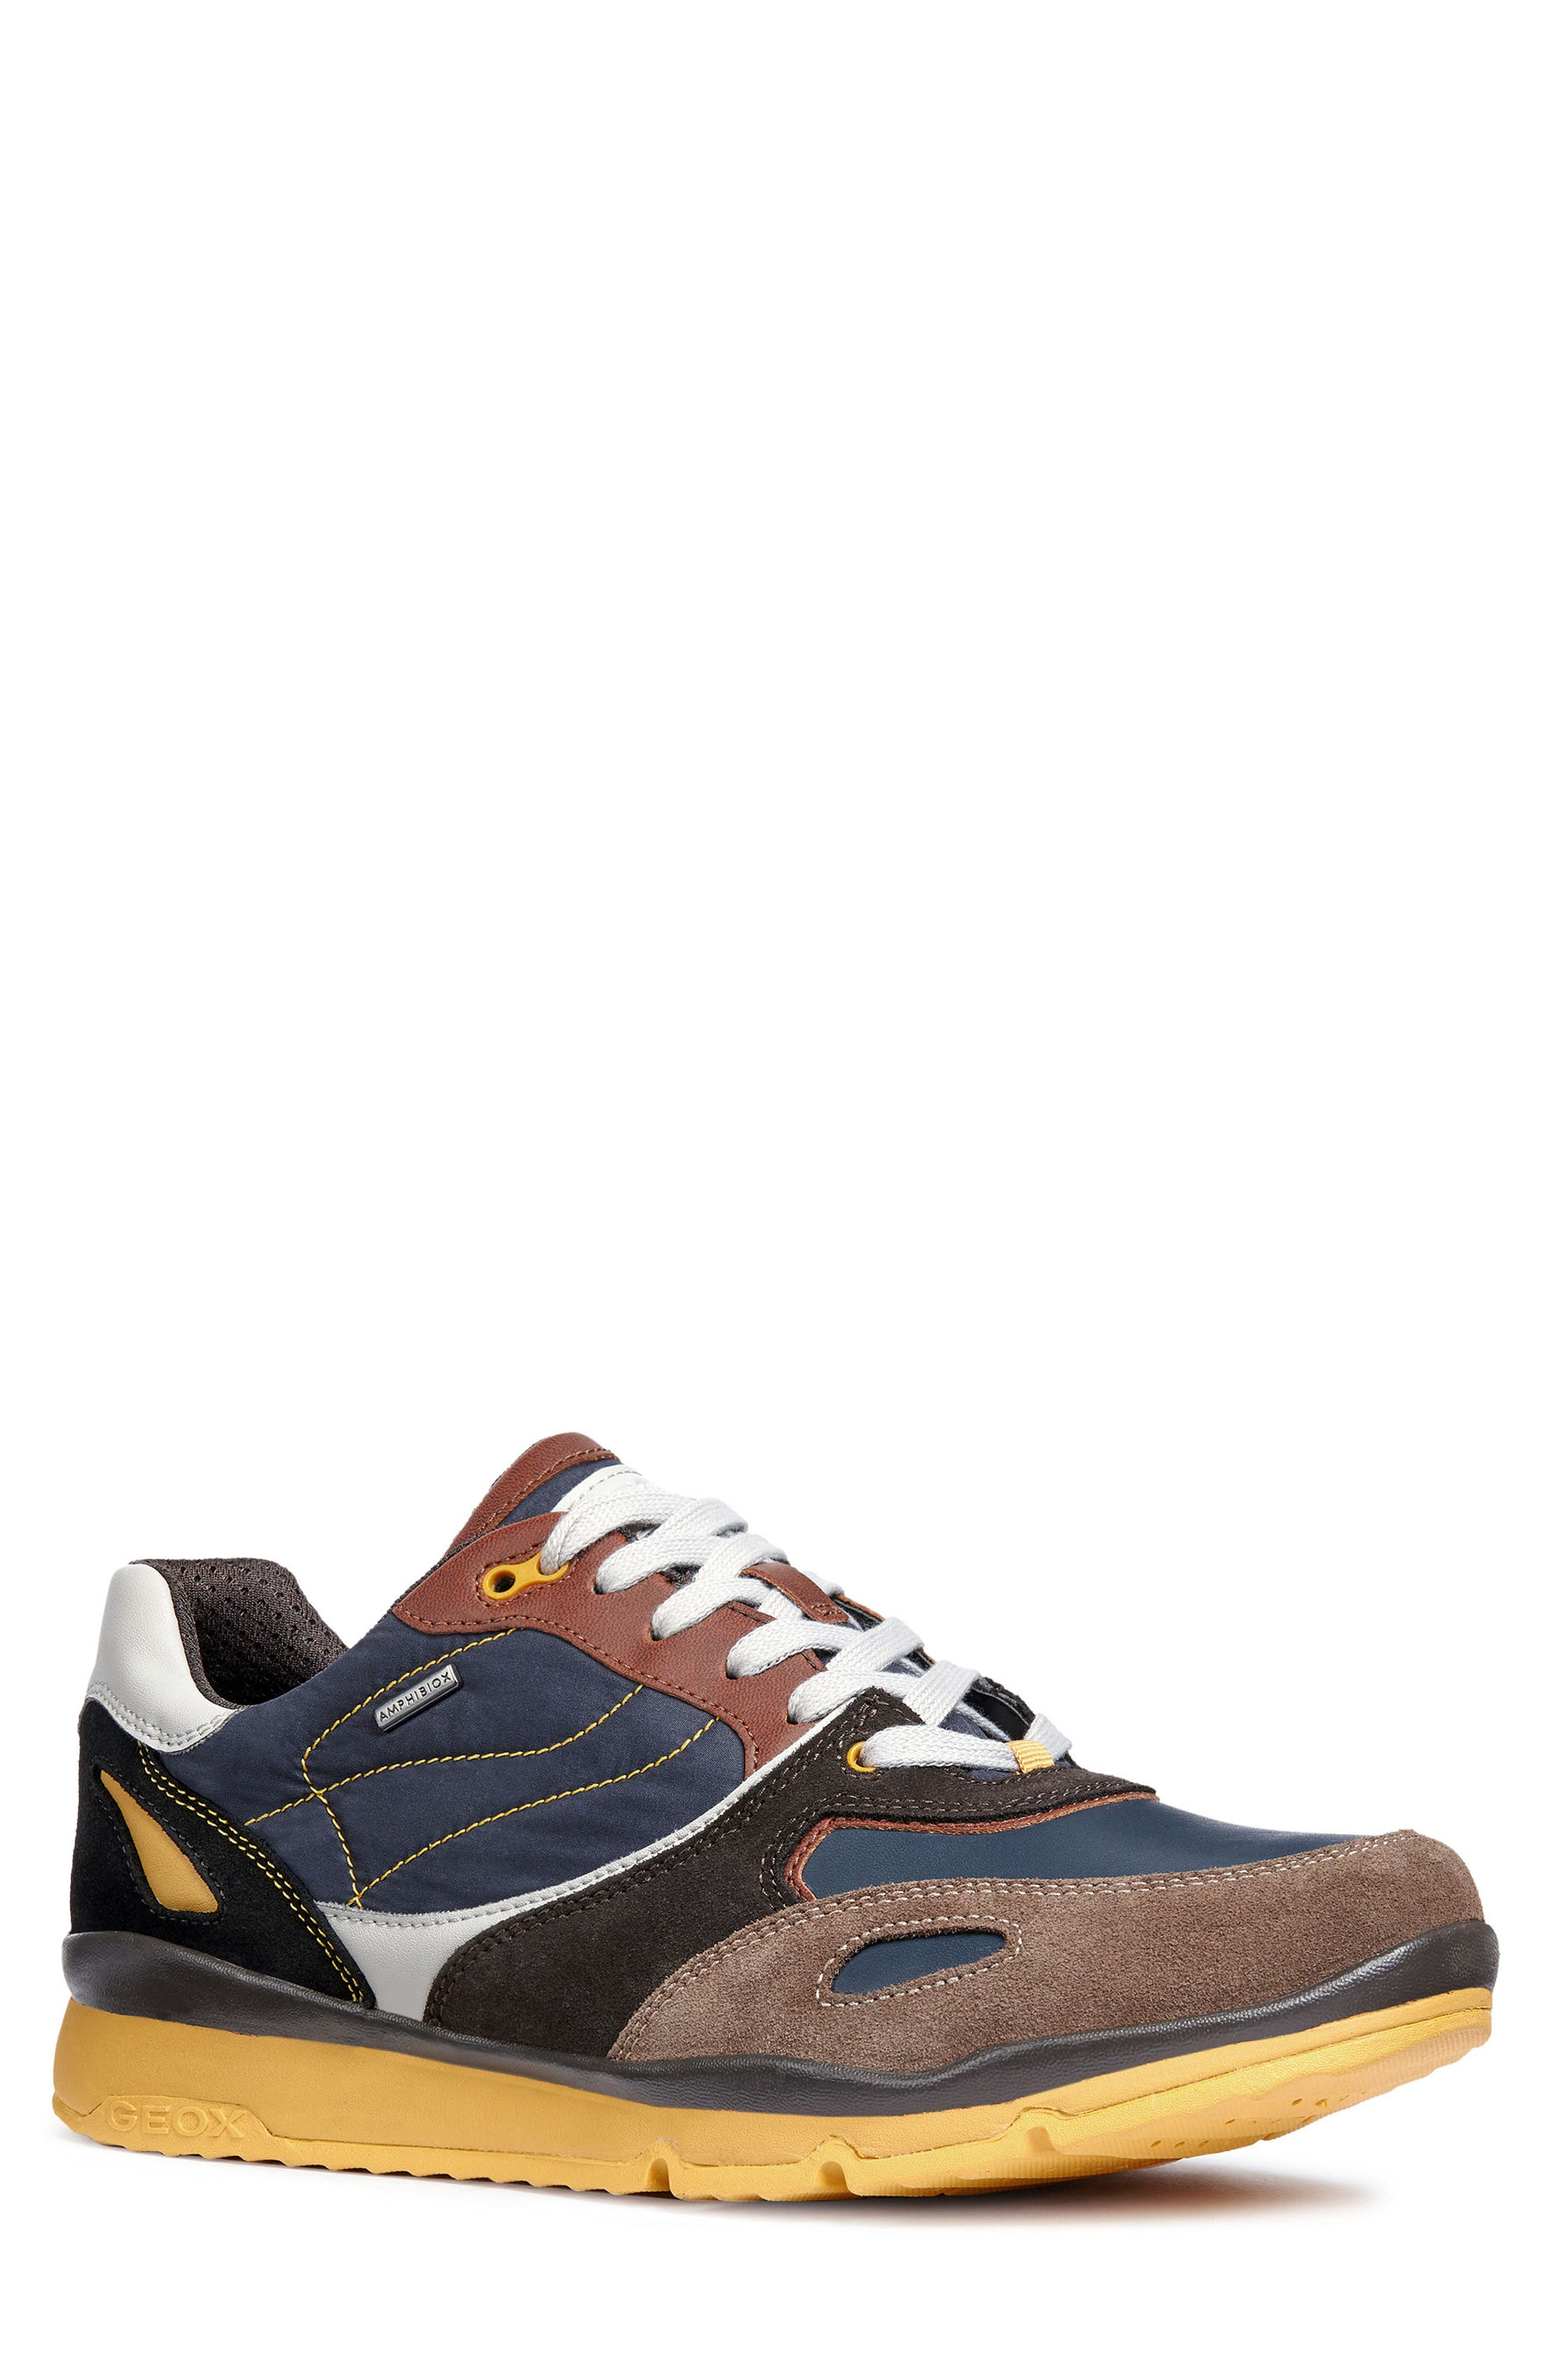 Sandford ABX 1 Waterproof Low Top Sneaker,                         Main,                         color, CHOCOLATE/ NAVY LEATHER